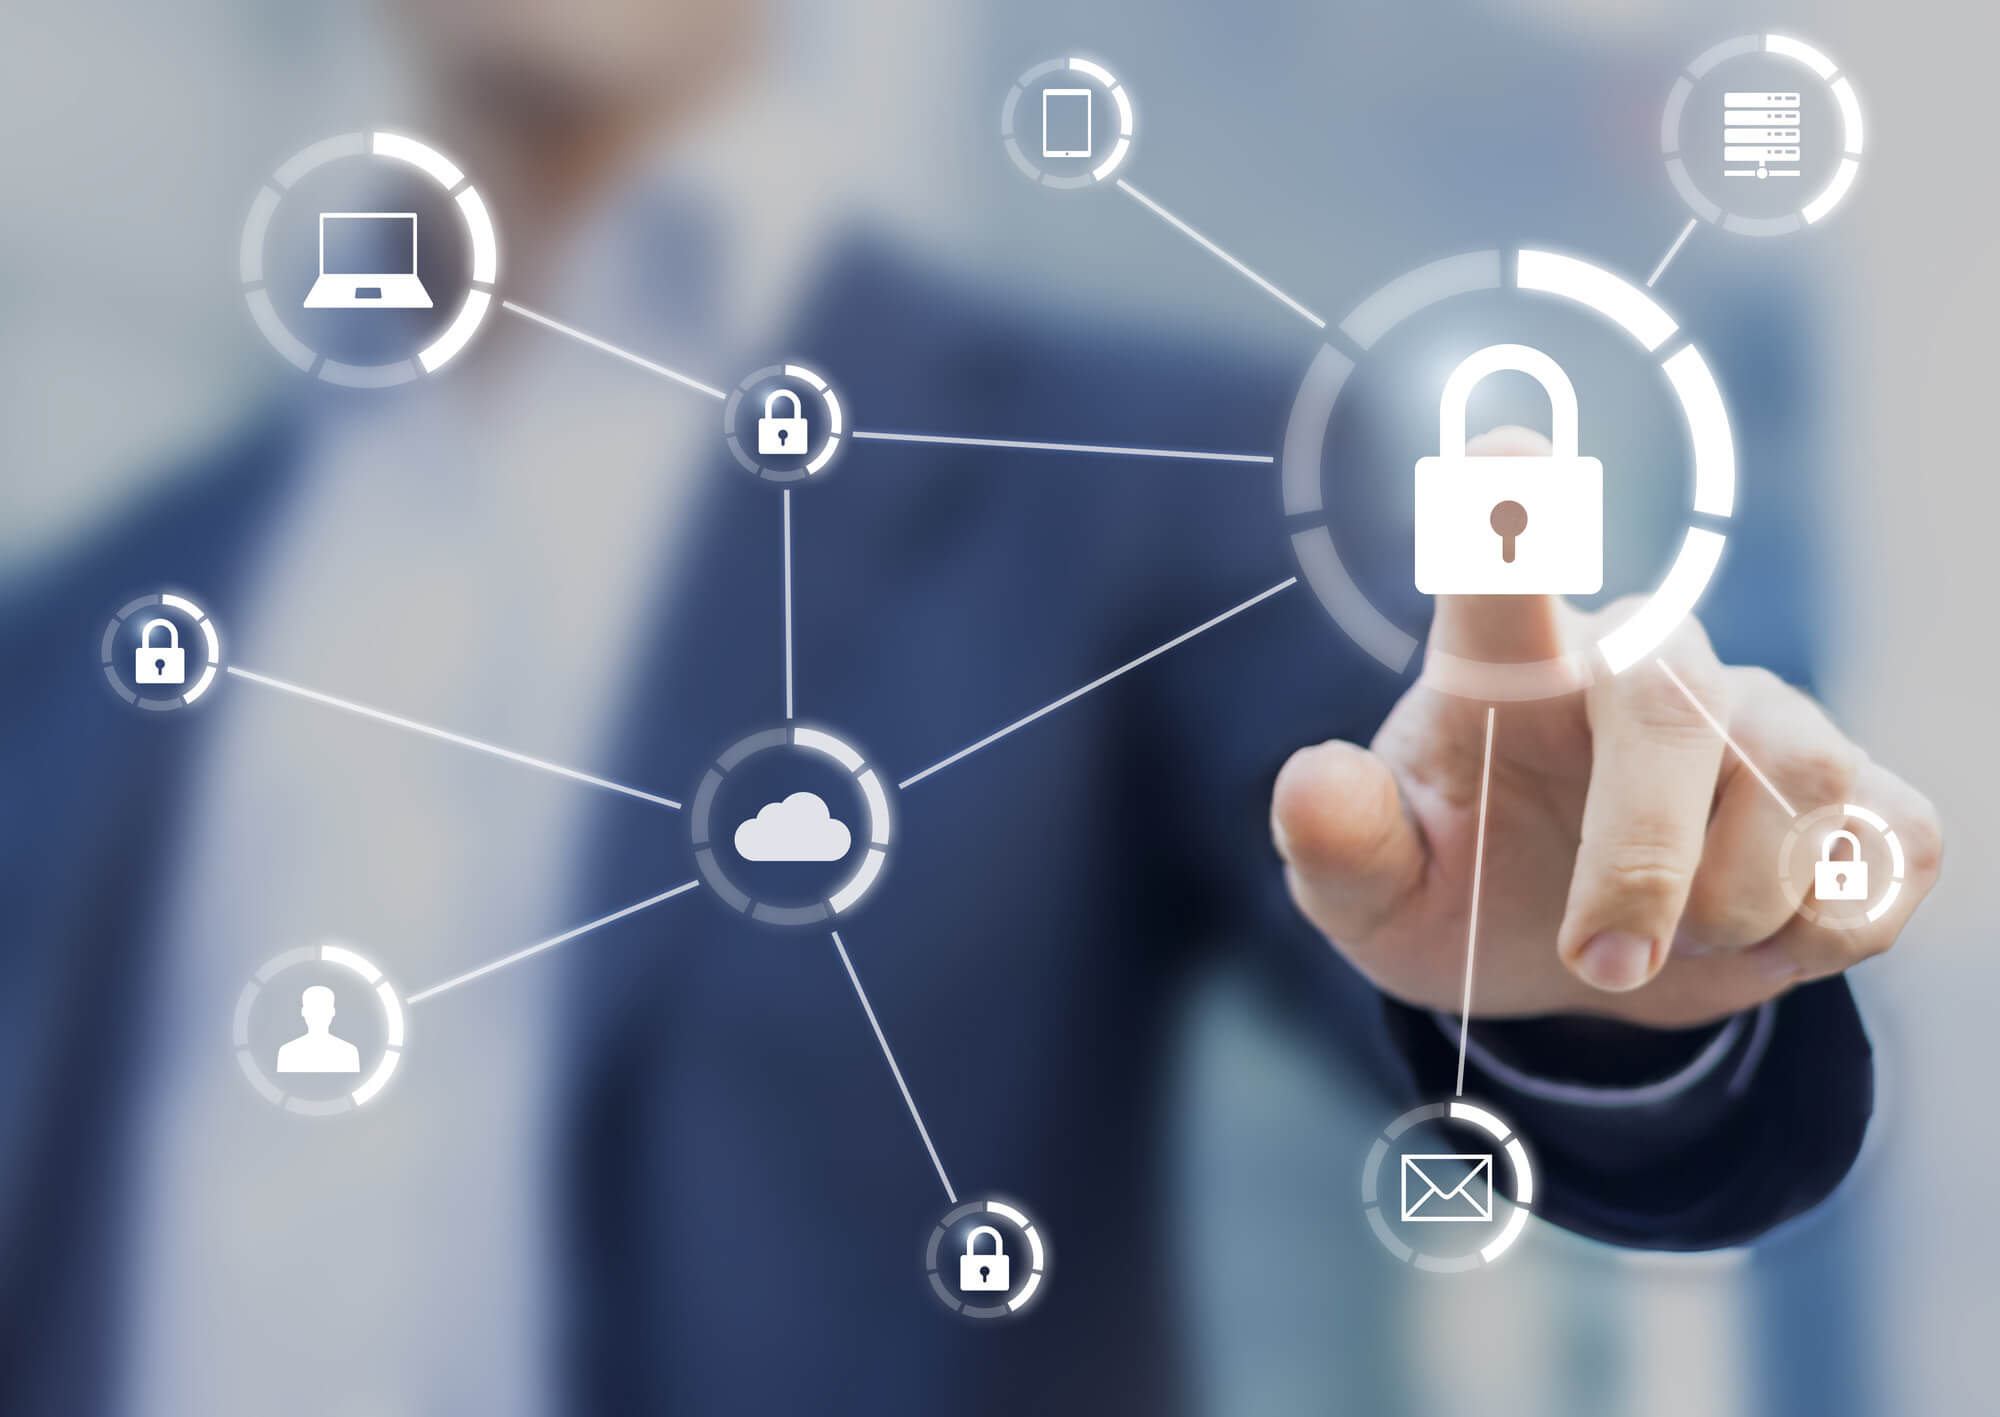 10 Common Internet Security Threats and How to Avoid Them